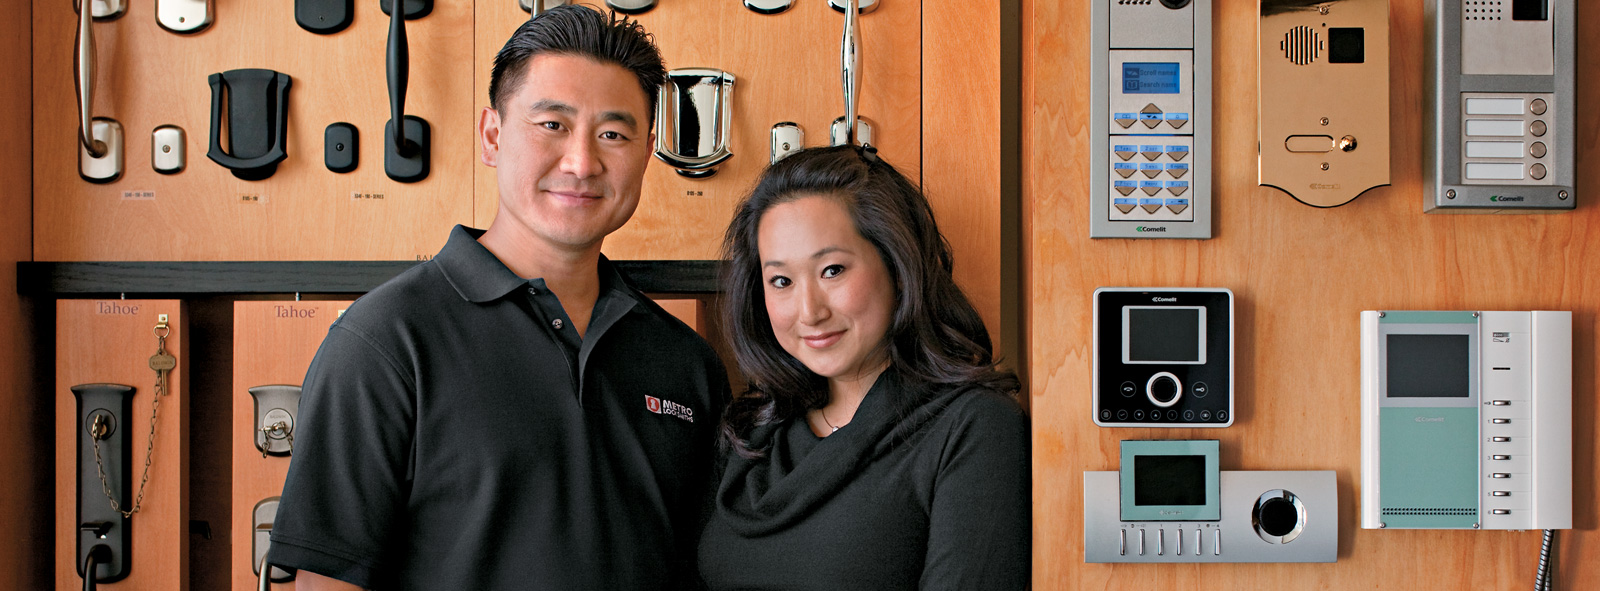 Image of First Republic Small Businesses client(s) Metro Locksmiths, Inc.